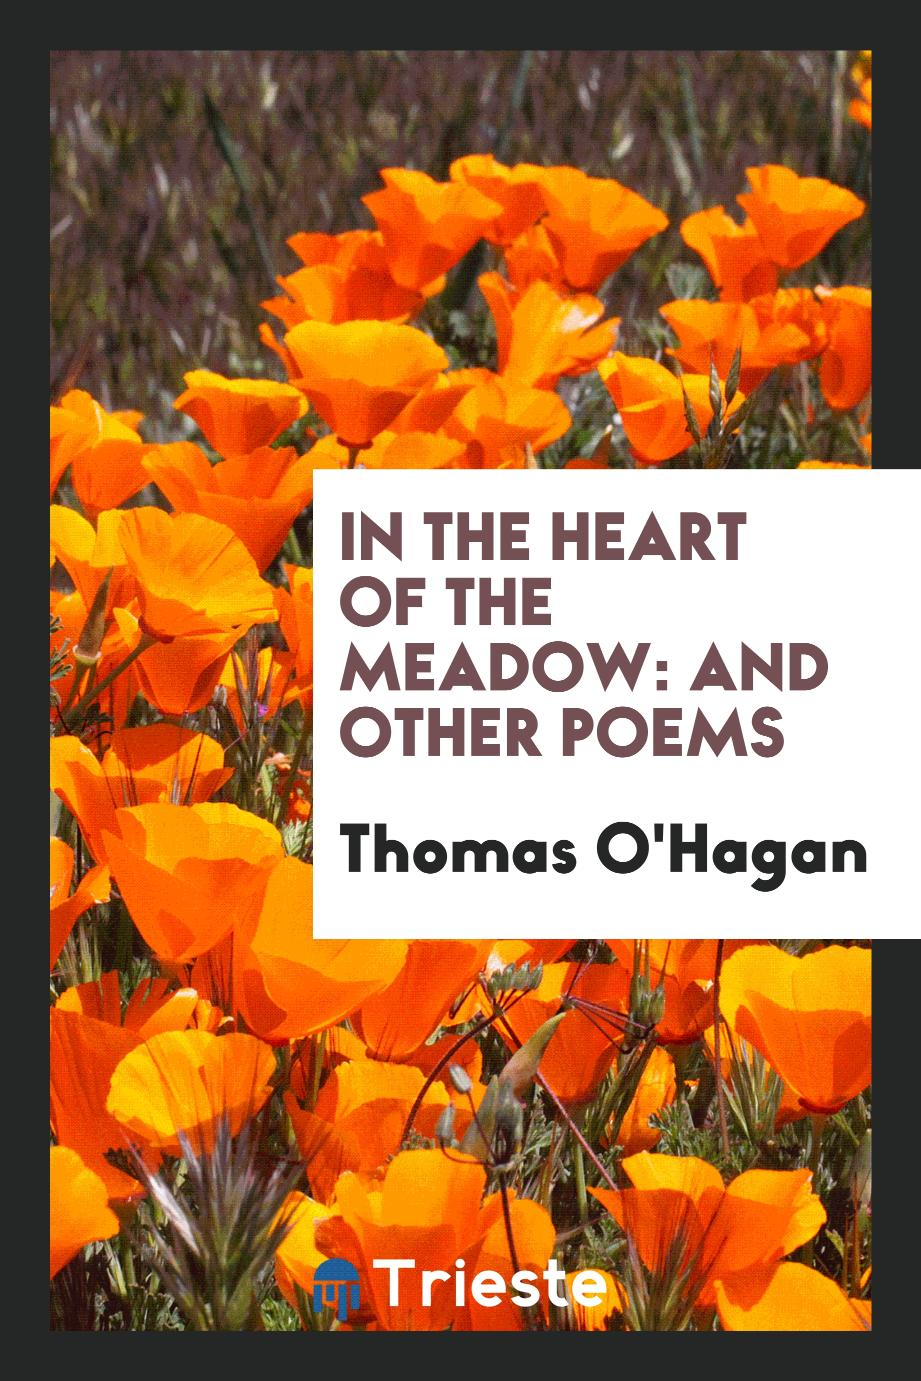 In the Heart of the Meadow: And Other Poems